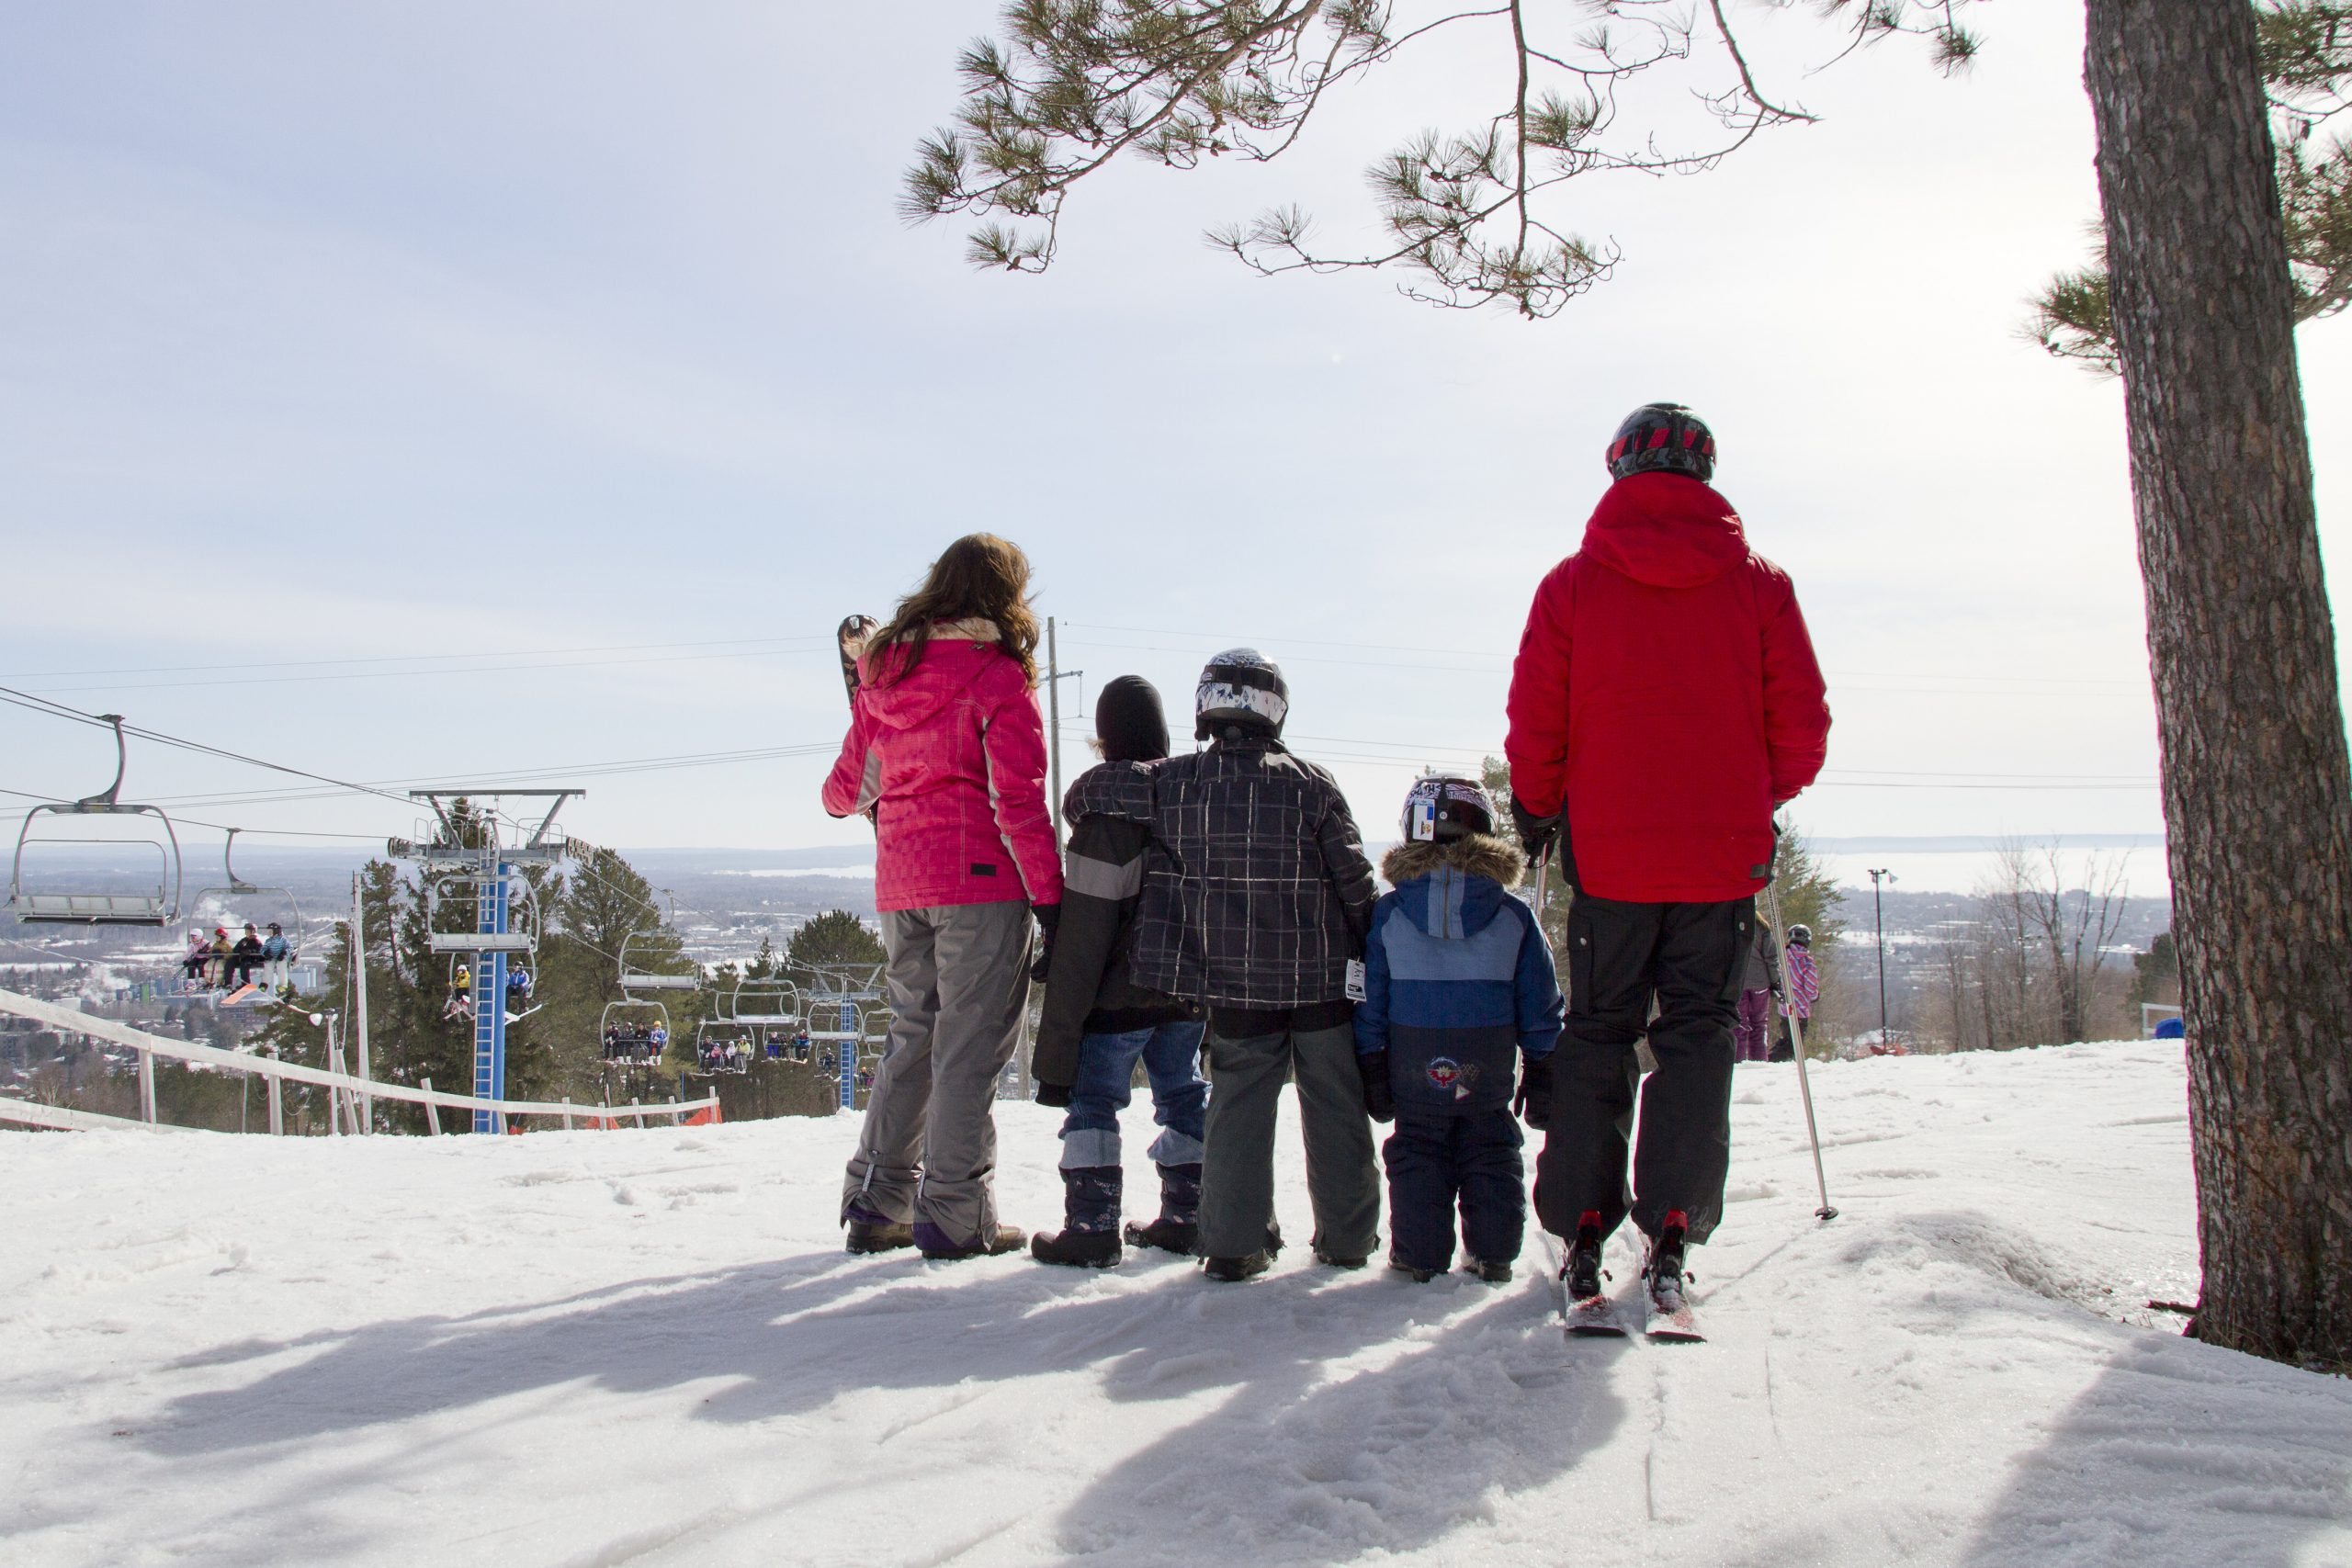 Laurentian Ski Hill - Downhill Skiing and Snowboarding in North Bay